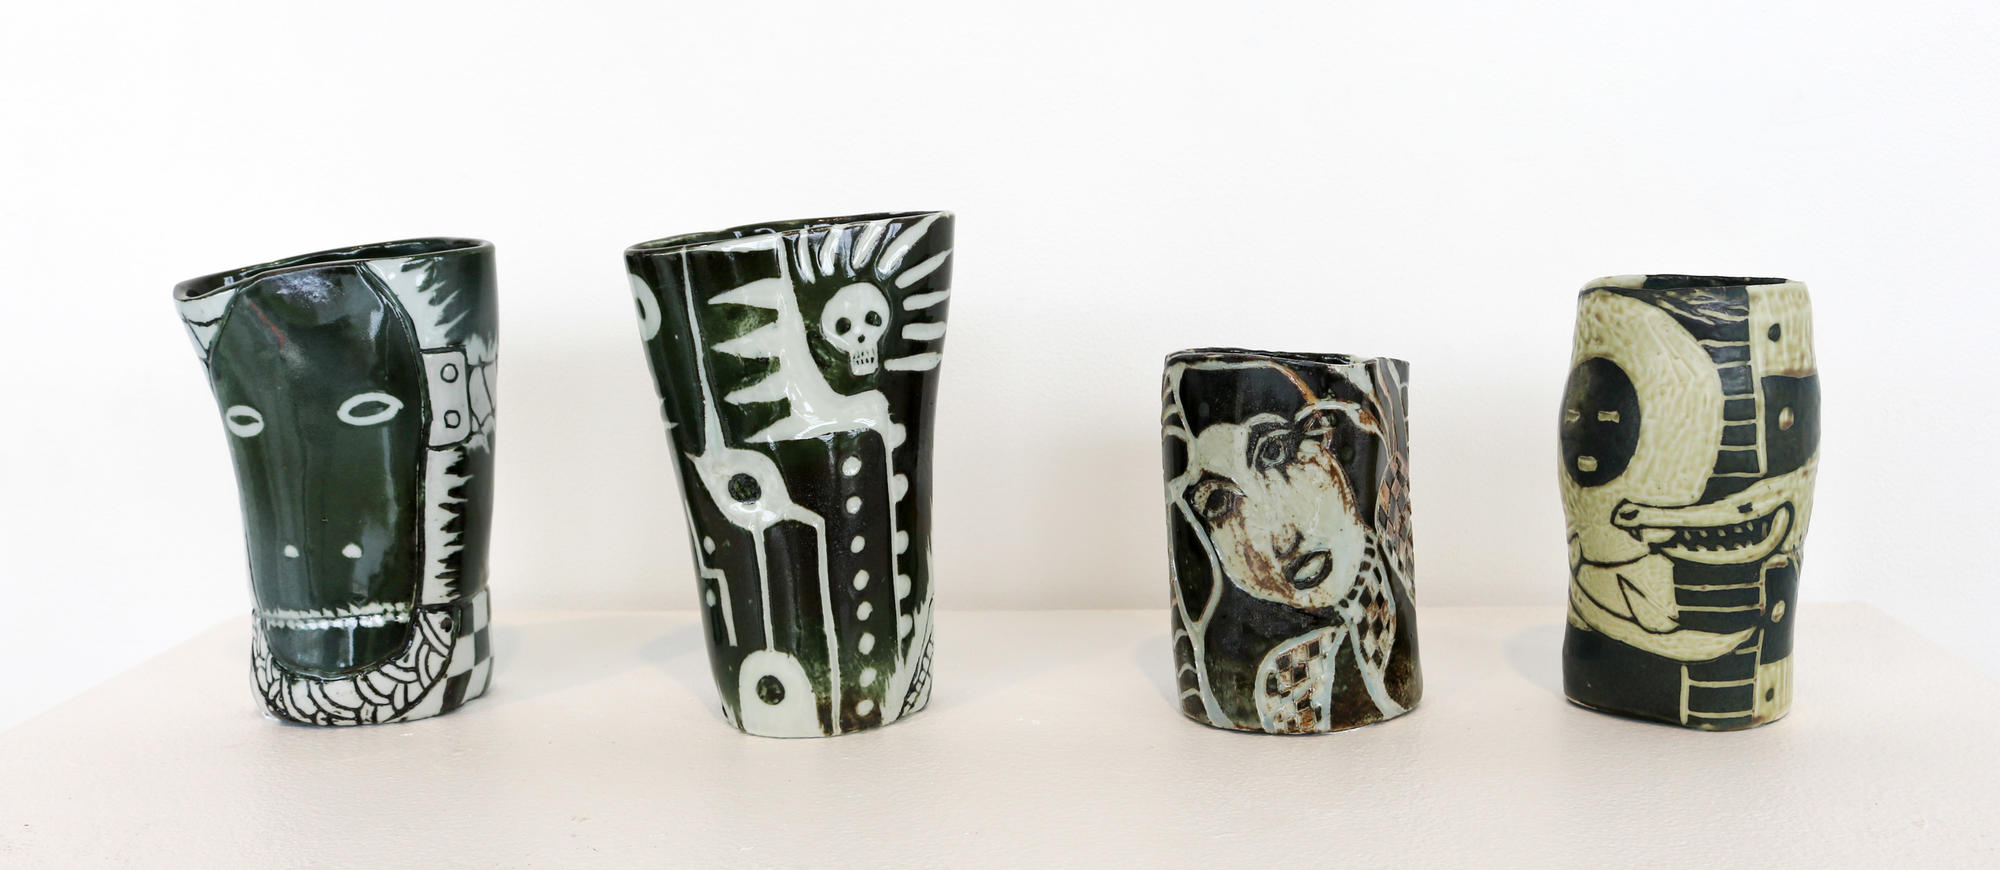 Ceramic vessels by James Keller